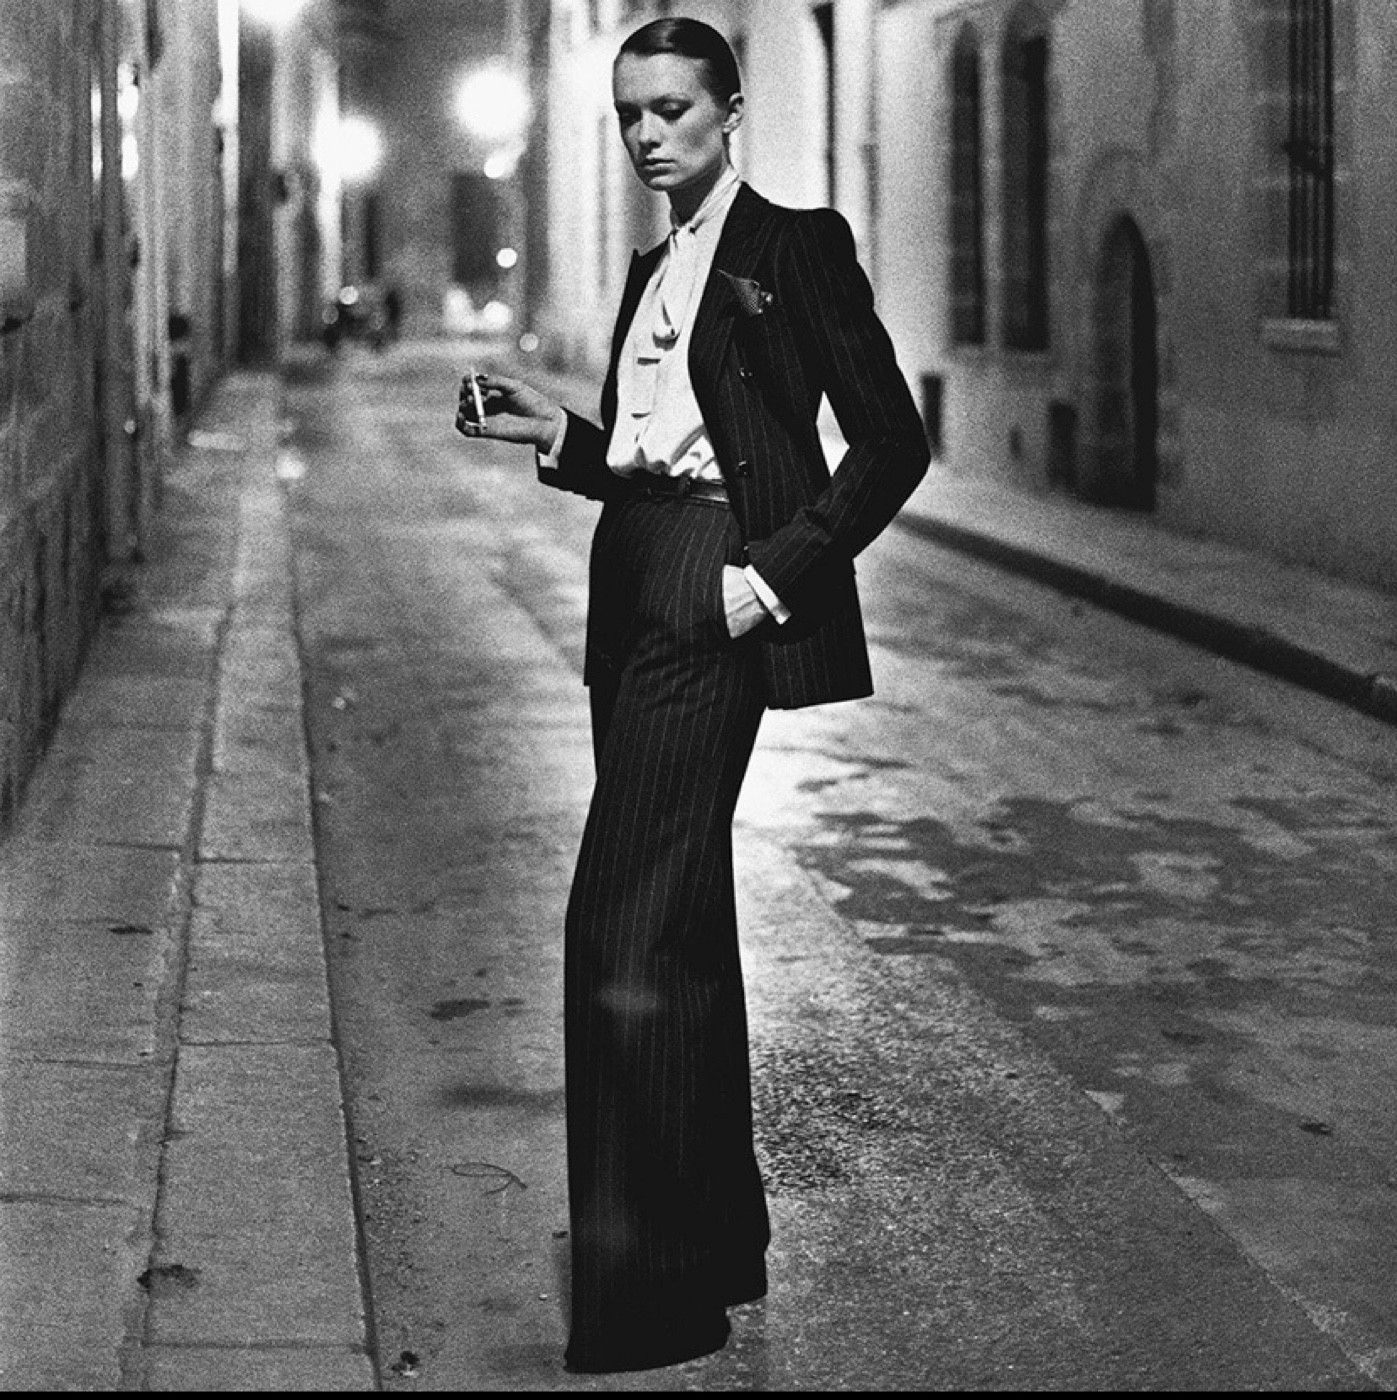 Rue Aubriot, Yves Saint Laurent, Vogue Paris, Paris 1975.   © The Helmut Newton Estate / Maconochie Photography